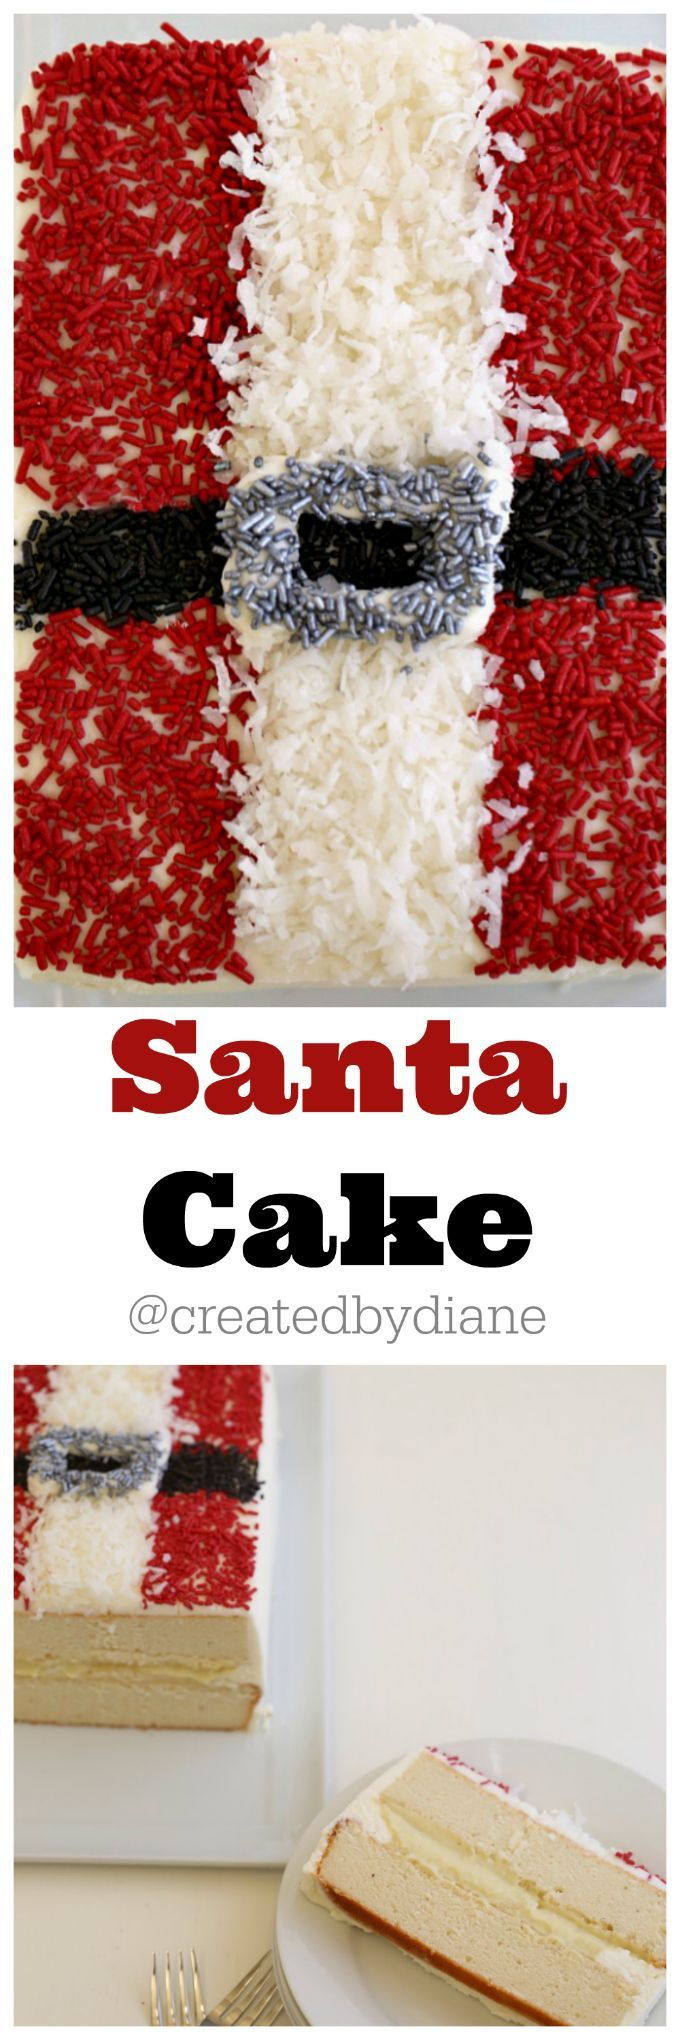 Santa Claus is comin' to town! Here's a whimsical Christmas cake that's sure to please all Santa and coconut lovers alike.   I can't resist coconut the more the better for me. Sweet, chewy, bursting with flavor... I've loved it as long as I can remember. the more the better for me! I made this cake and FILLED it with creamy coconut custard. @createdbydiane